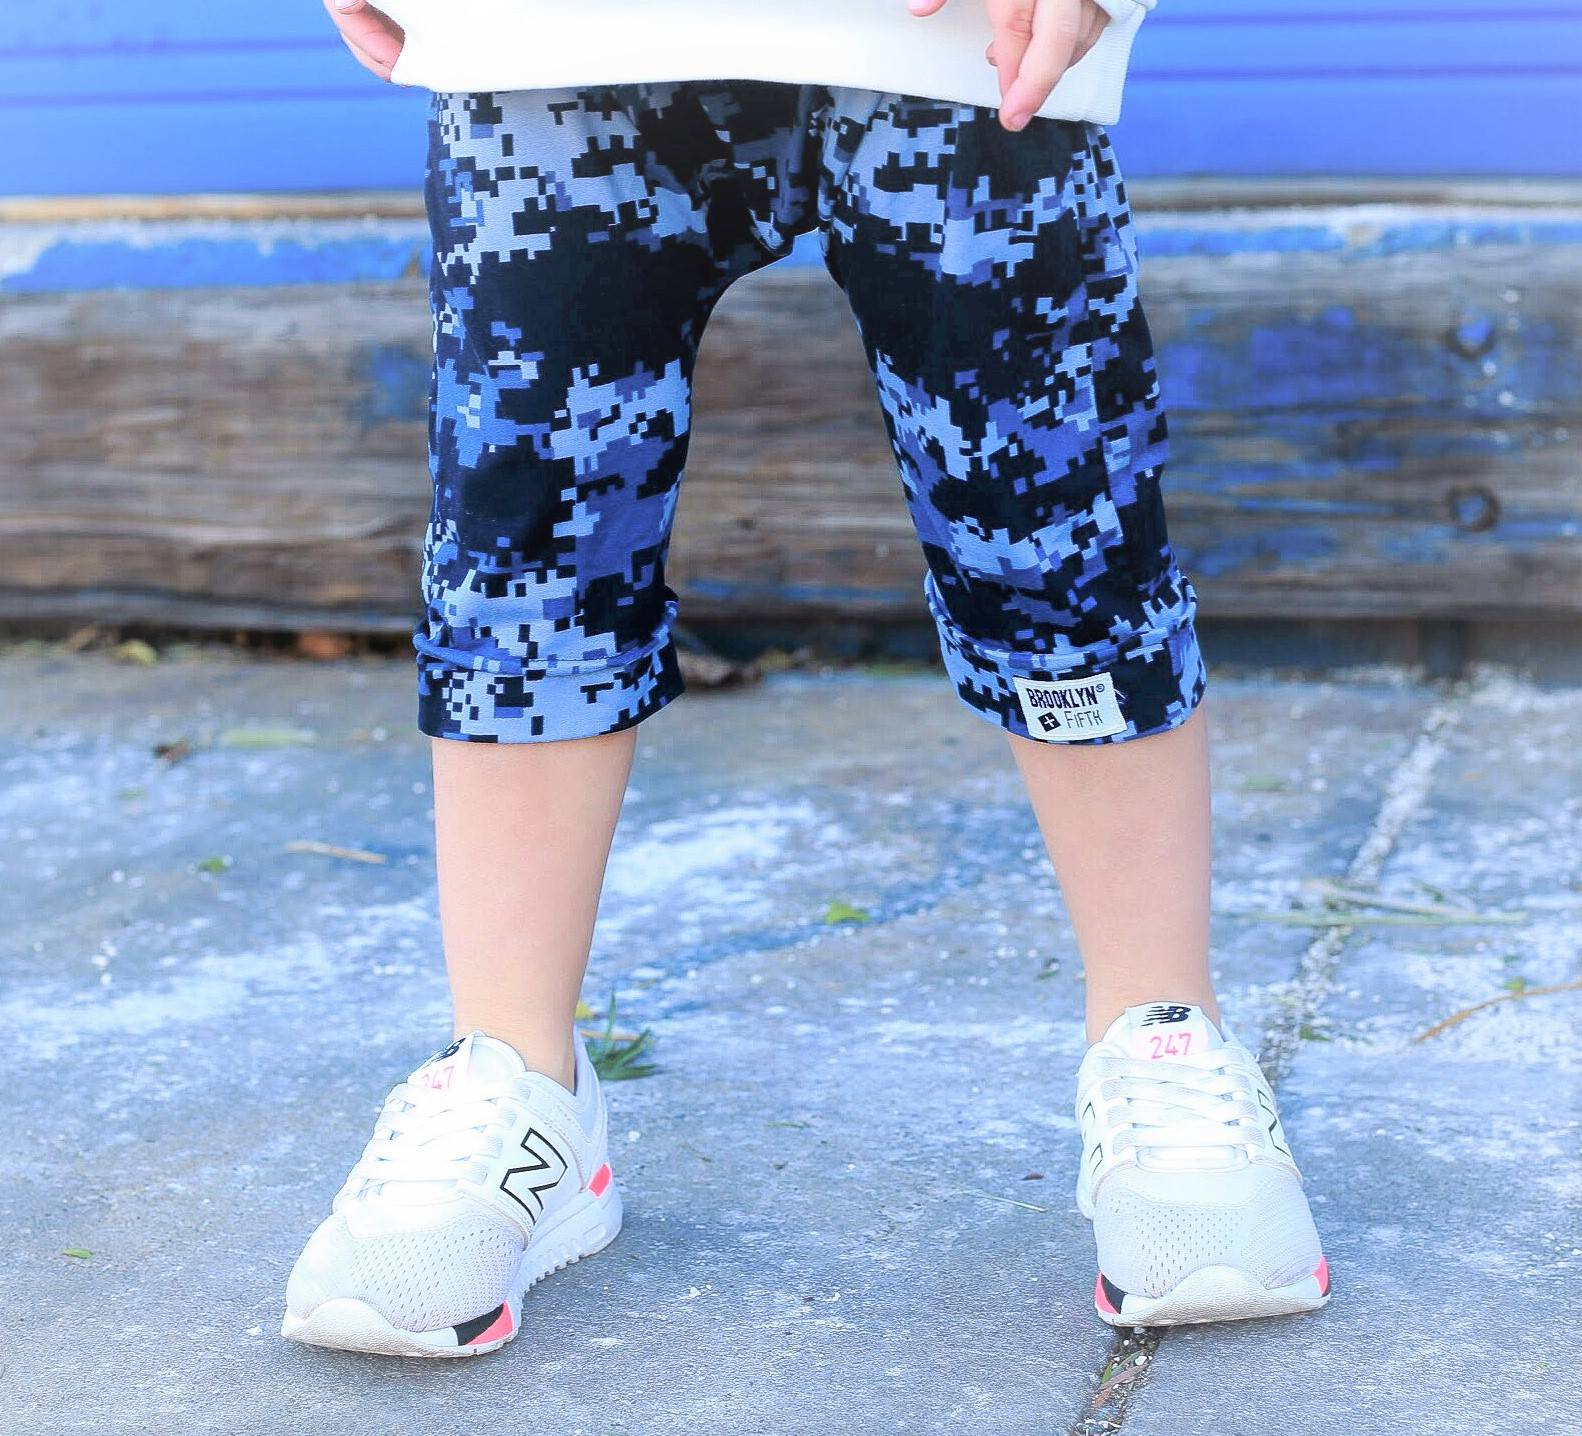 Brooklyn + Fifth Toddler Camo Harem Pants. Stylish Toddler Pants. Camo Pants for boys. Soft toddler Pants. Infant Camo Pants. Baby Pants. Baby Camo Pants. Kids Pants. Made in the USA